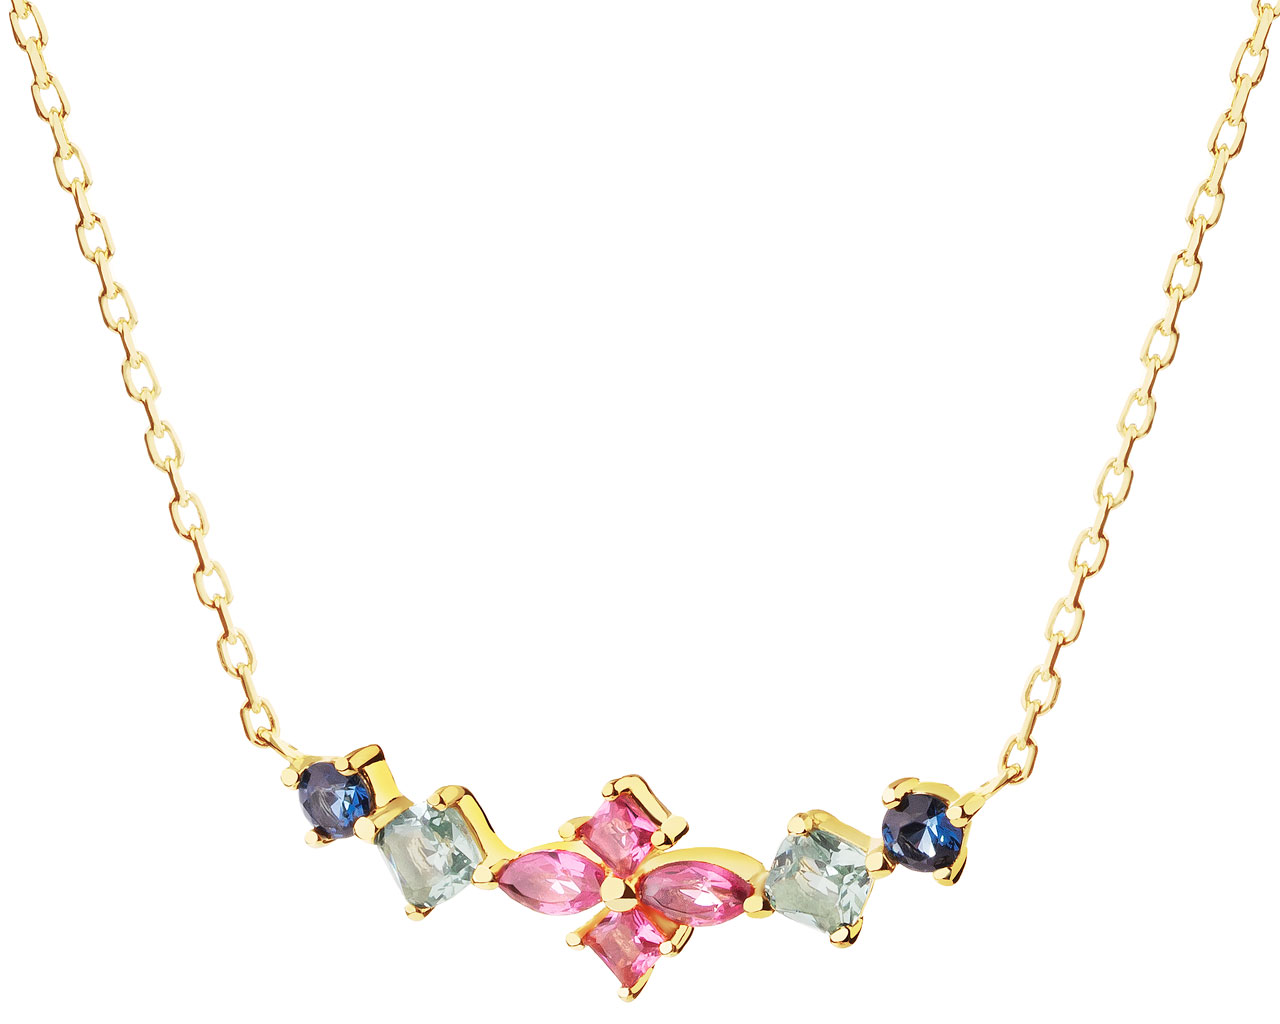 Gold-Plated Silver Necklace with Cubic Zirconia